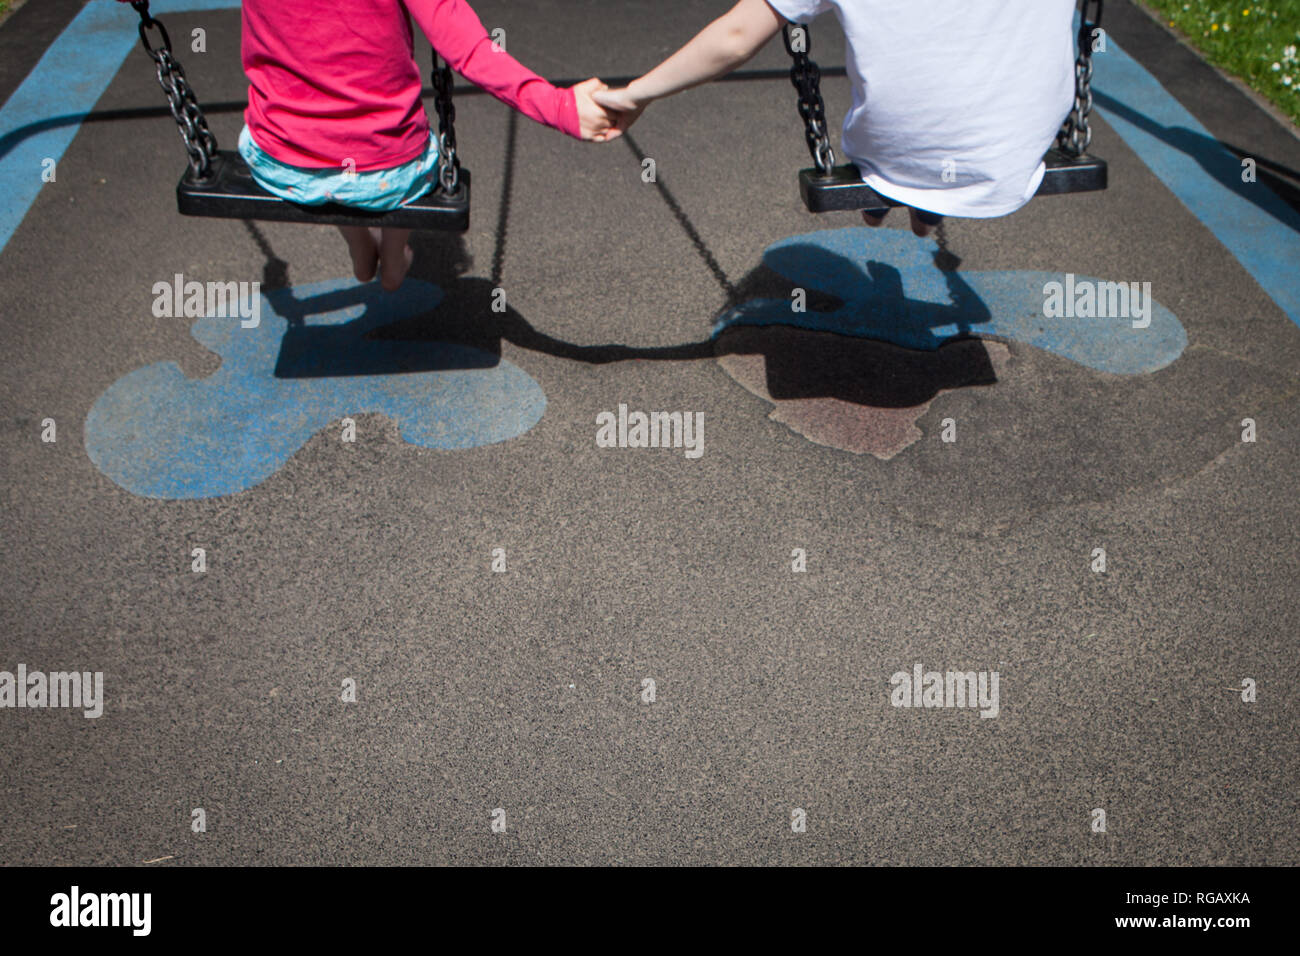 Two caucasion girls playing on swings in a park in a playground Stock Photo